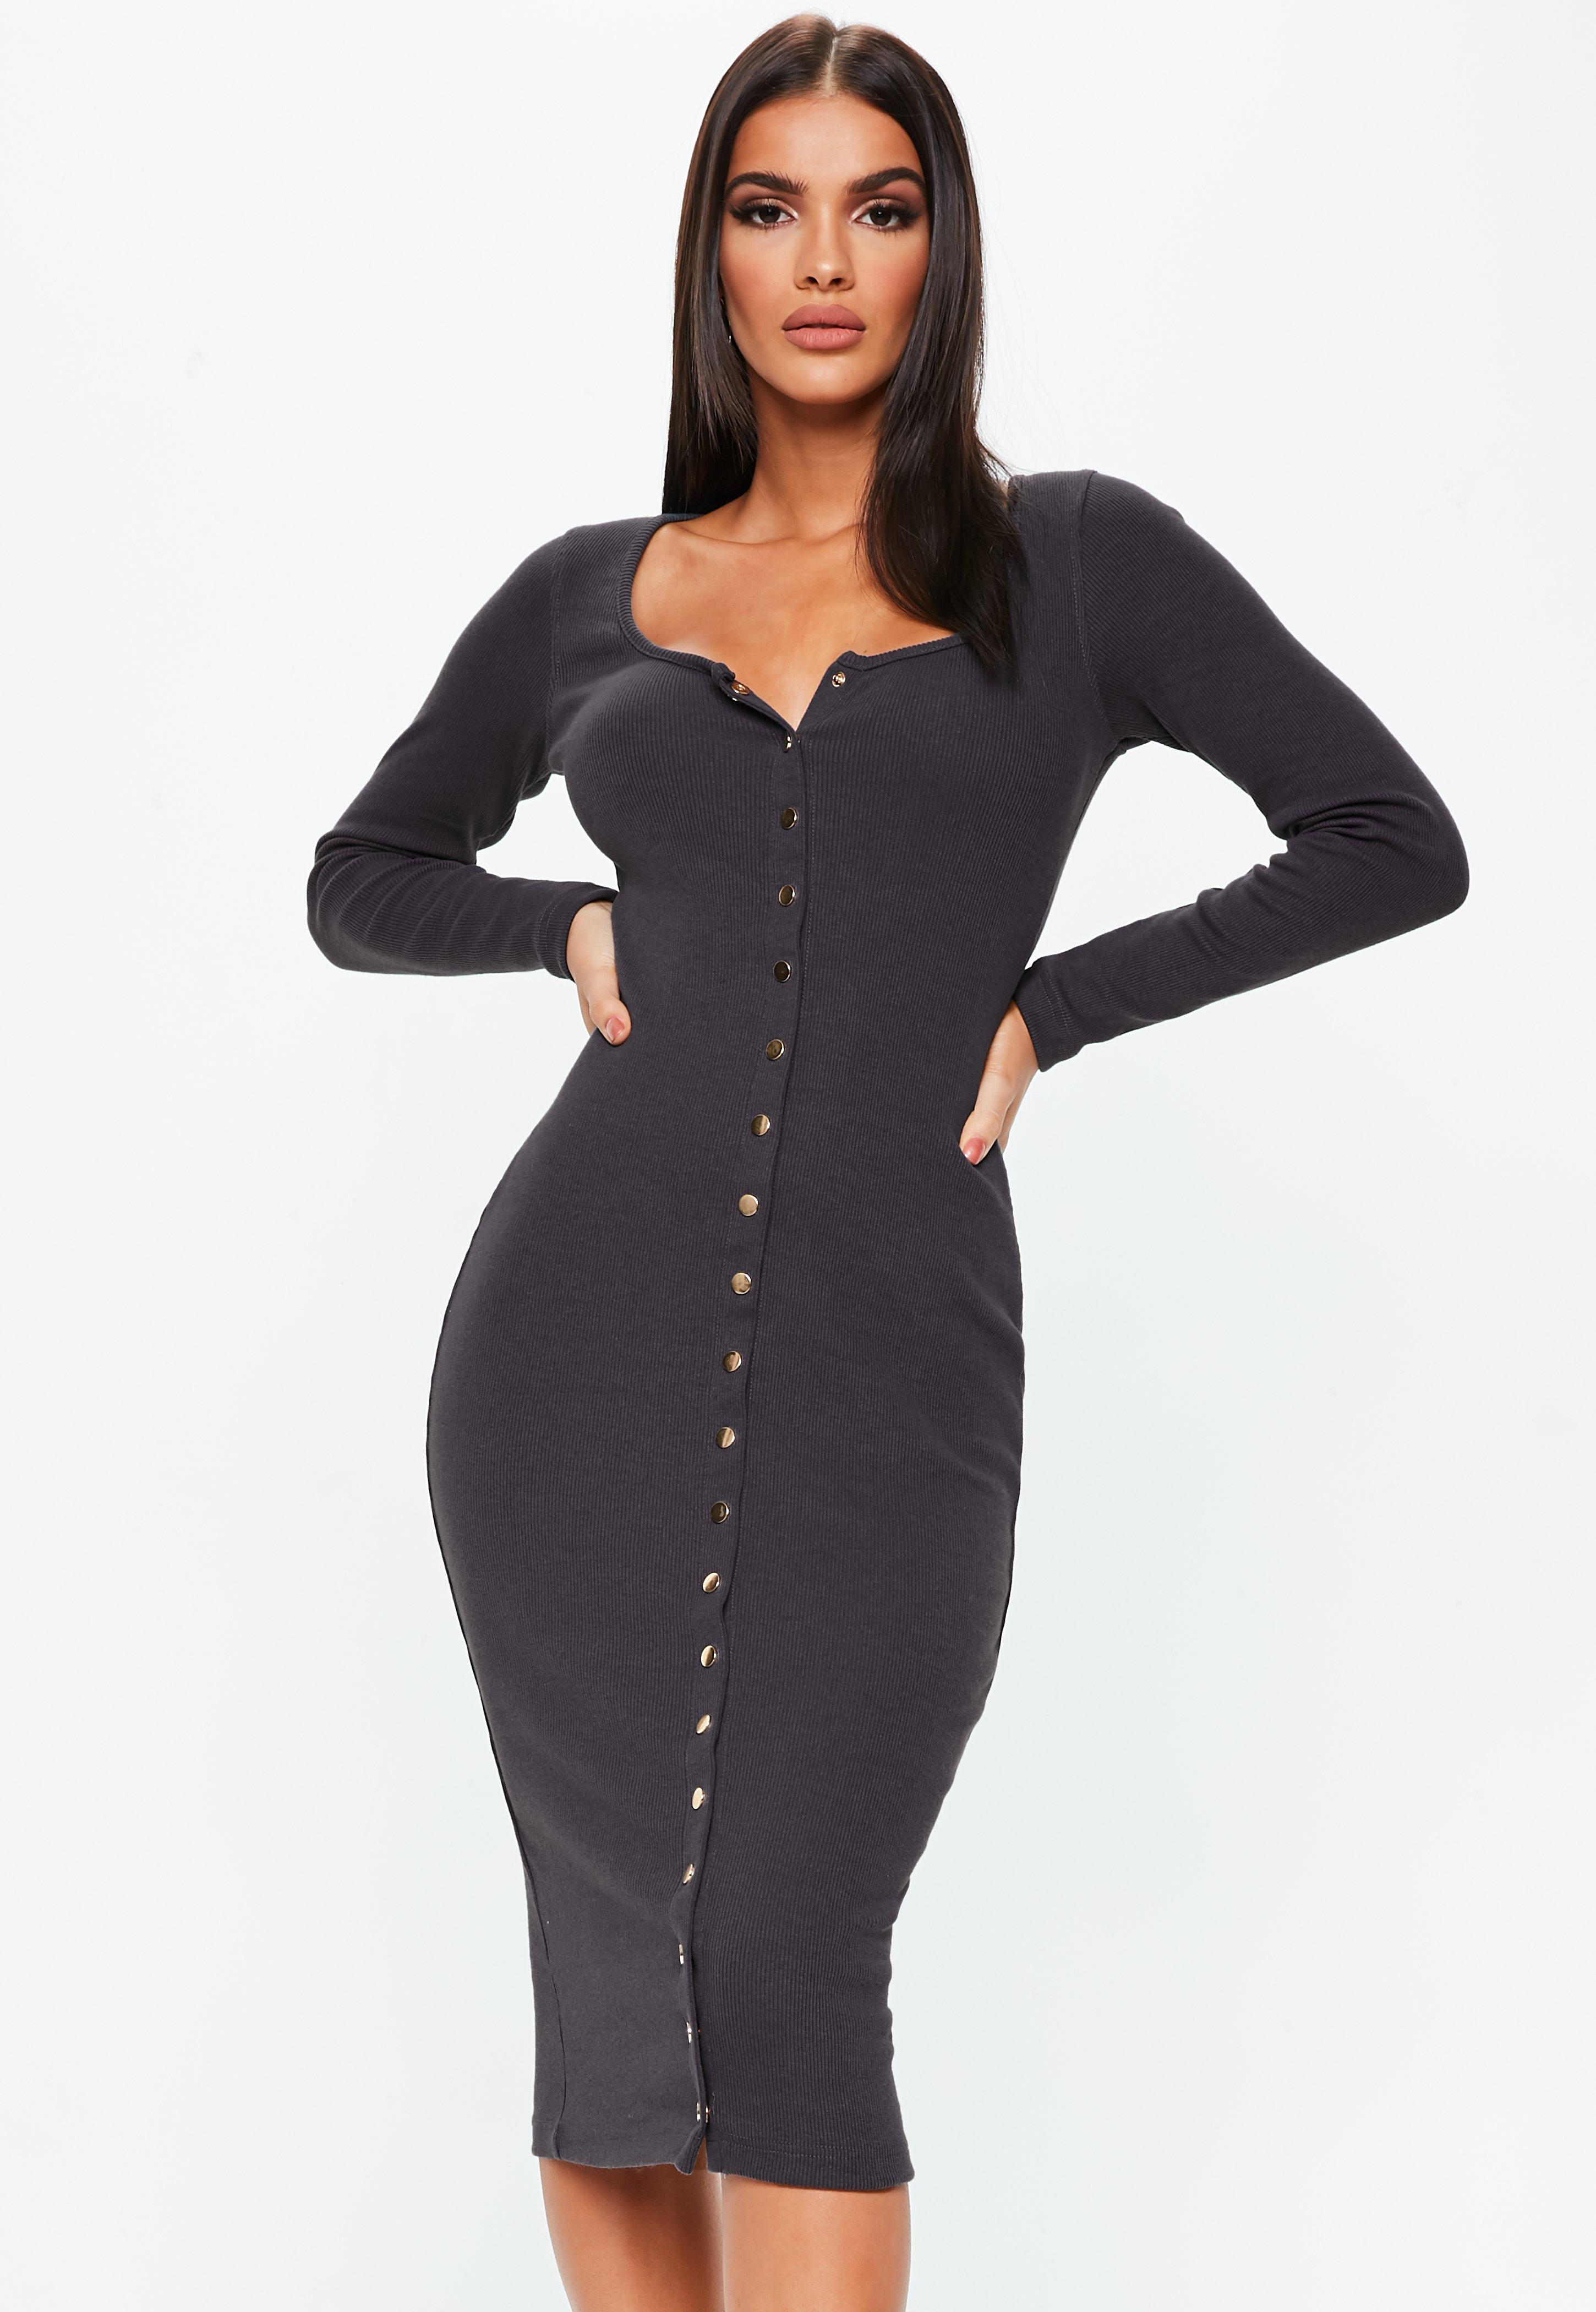 Bodycon Dresses Tight Fitted Missguided Timberland 14865xsbn 12 Coklat Rosegold